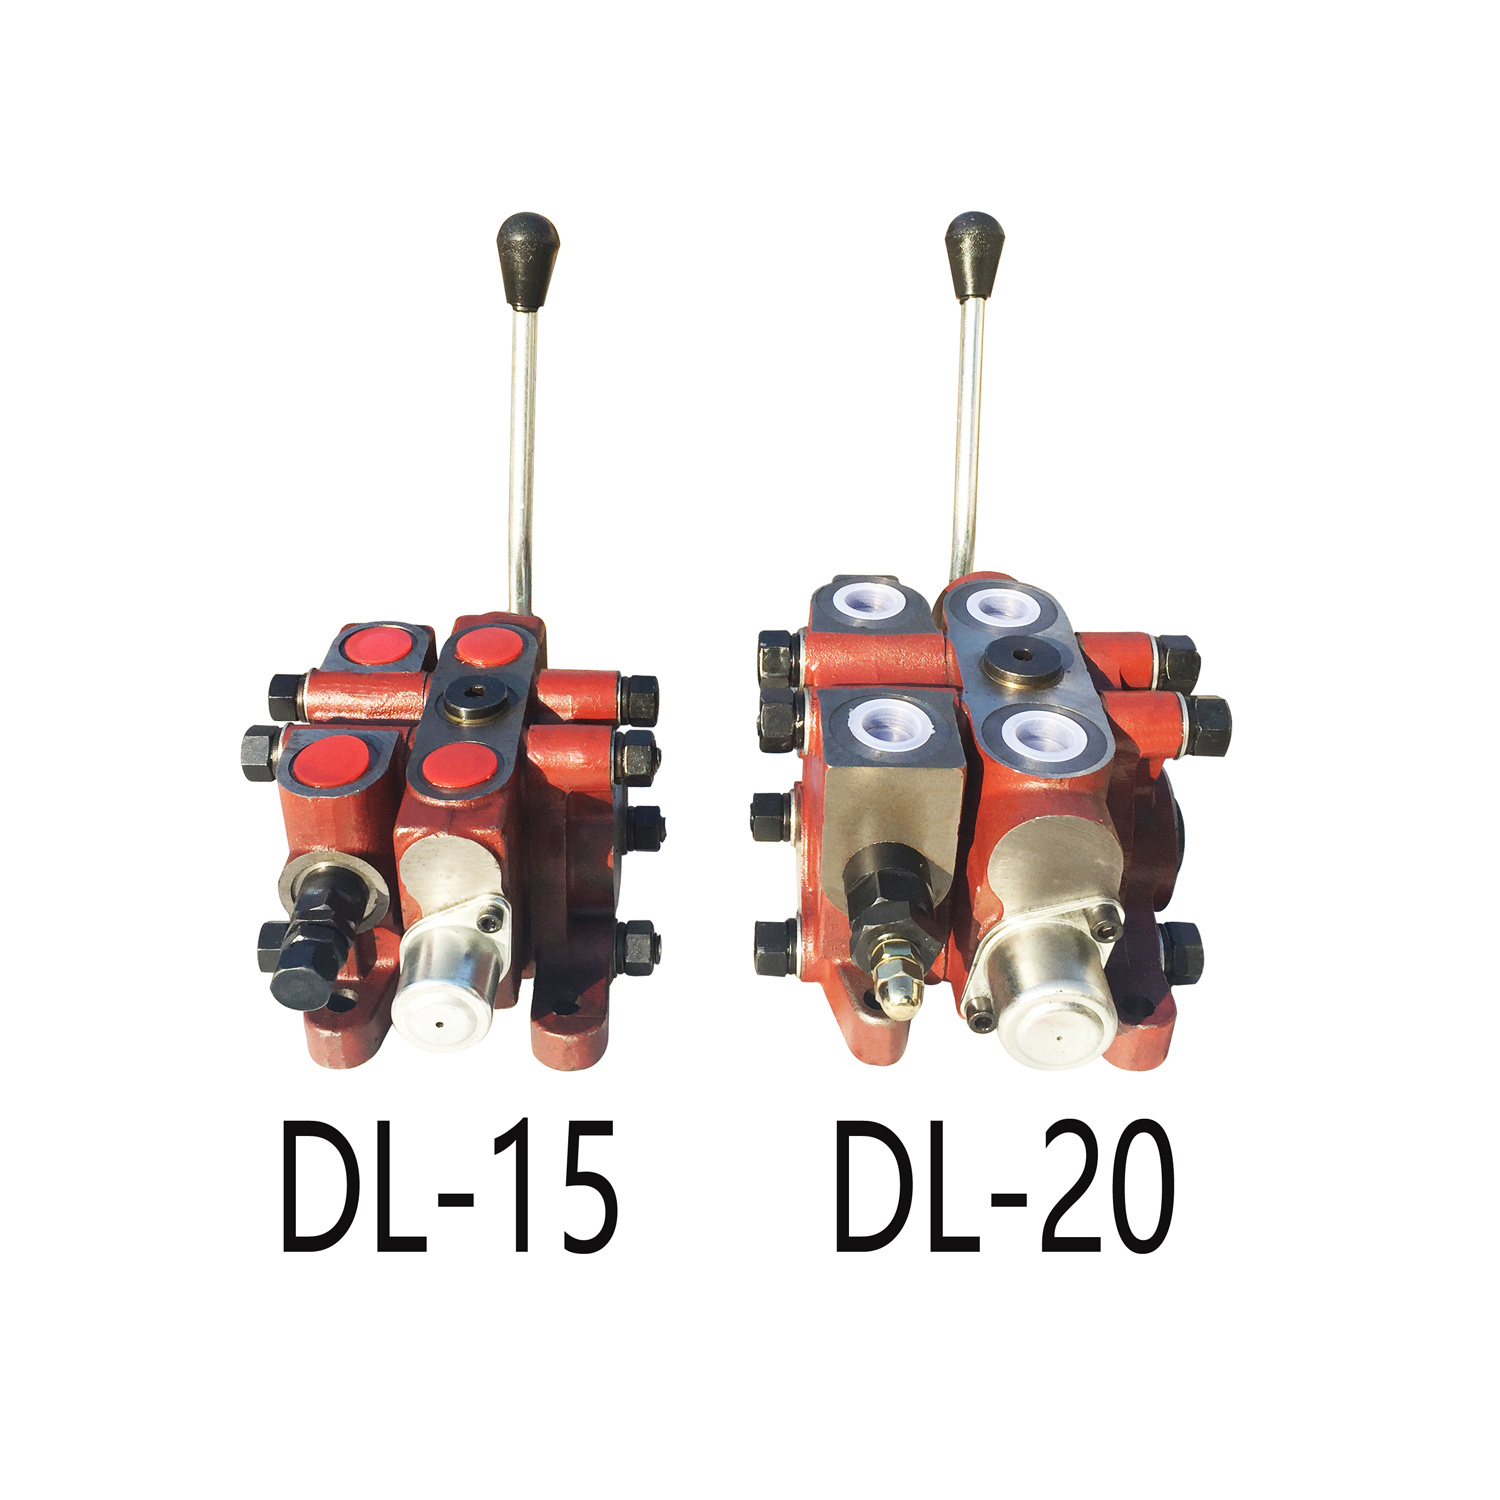 DL15 6 Spool Hydraulic Control Valve Mounting Relief Valve Equipment